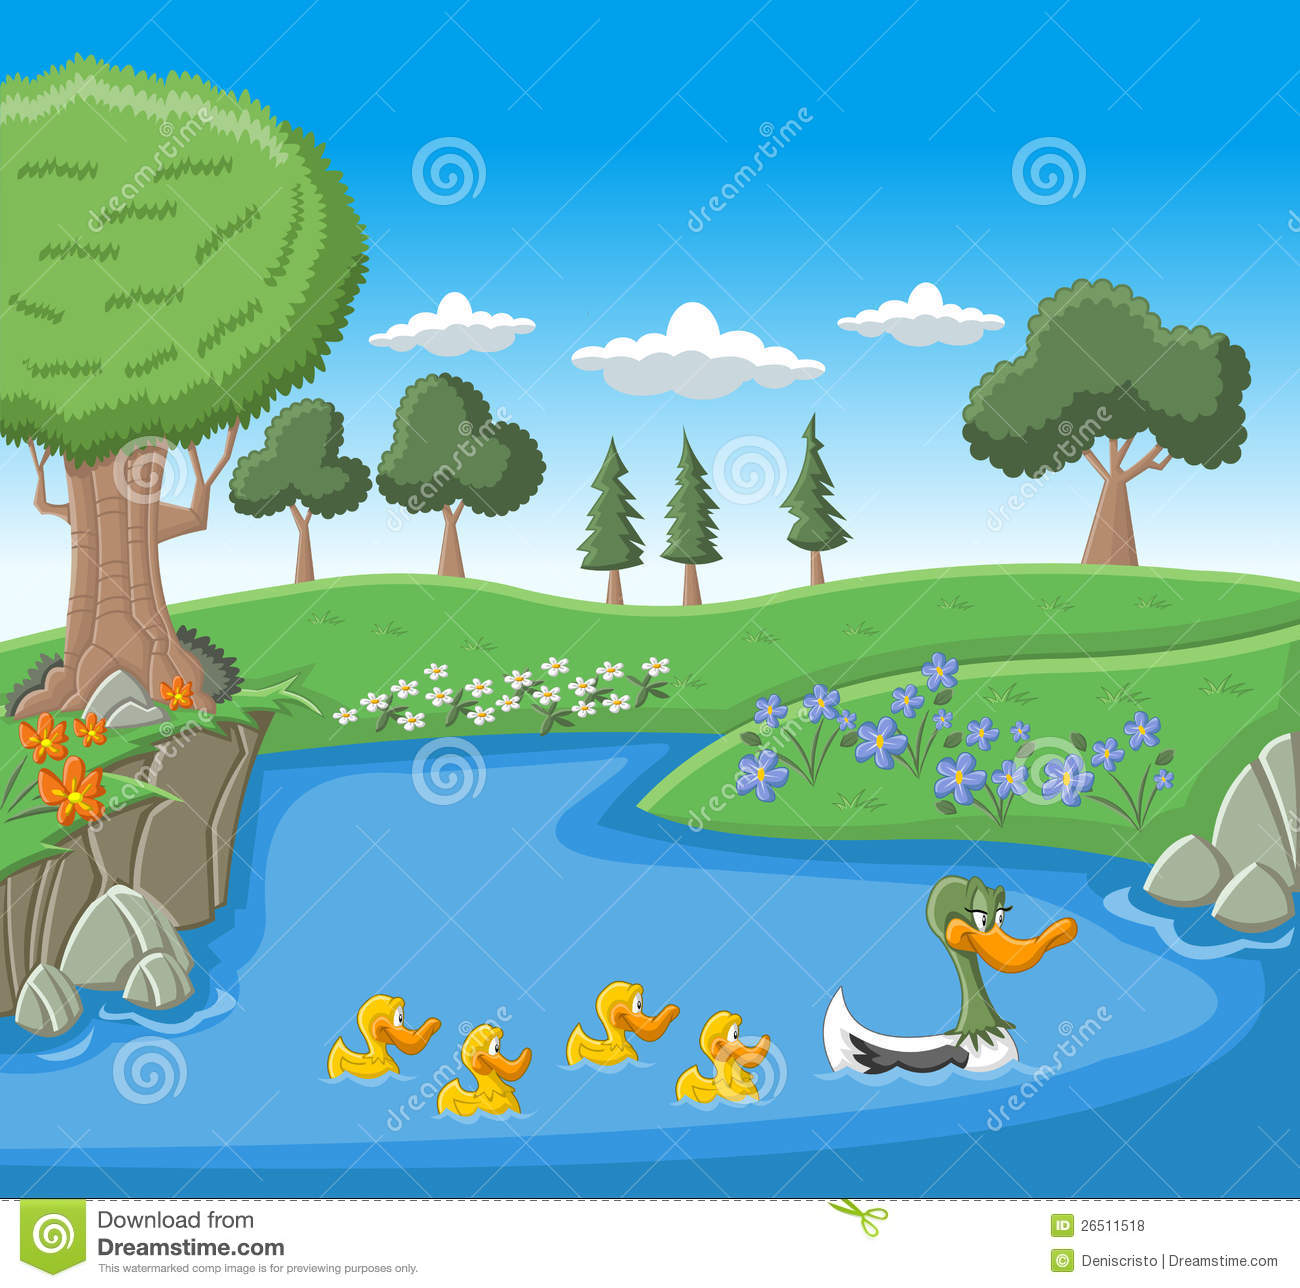 Lake clipart nature #7 - Lake Clipart